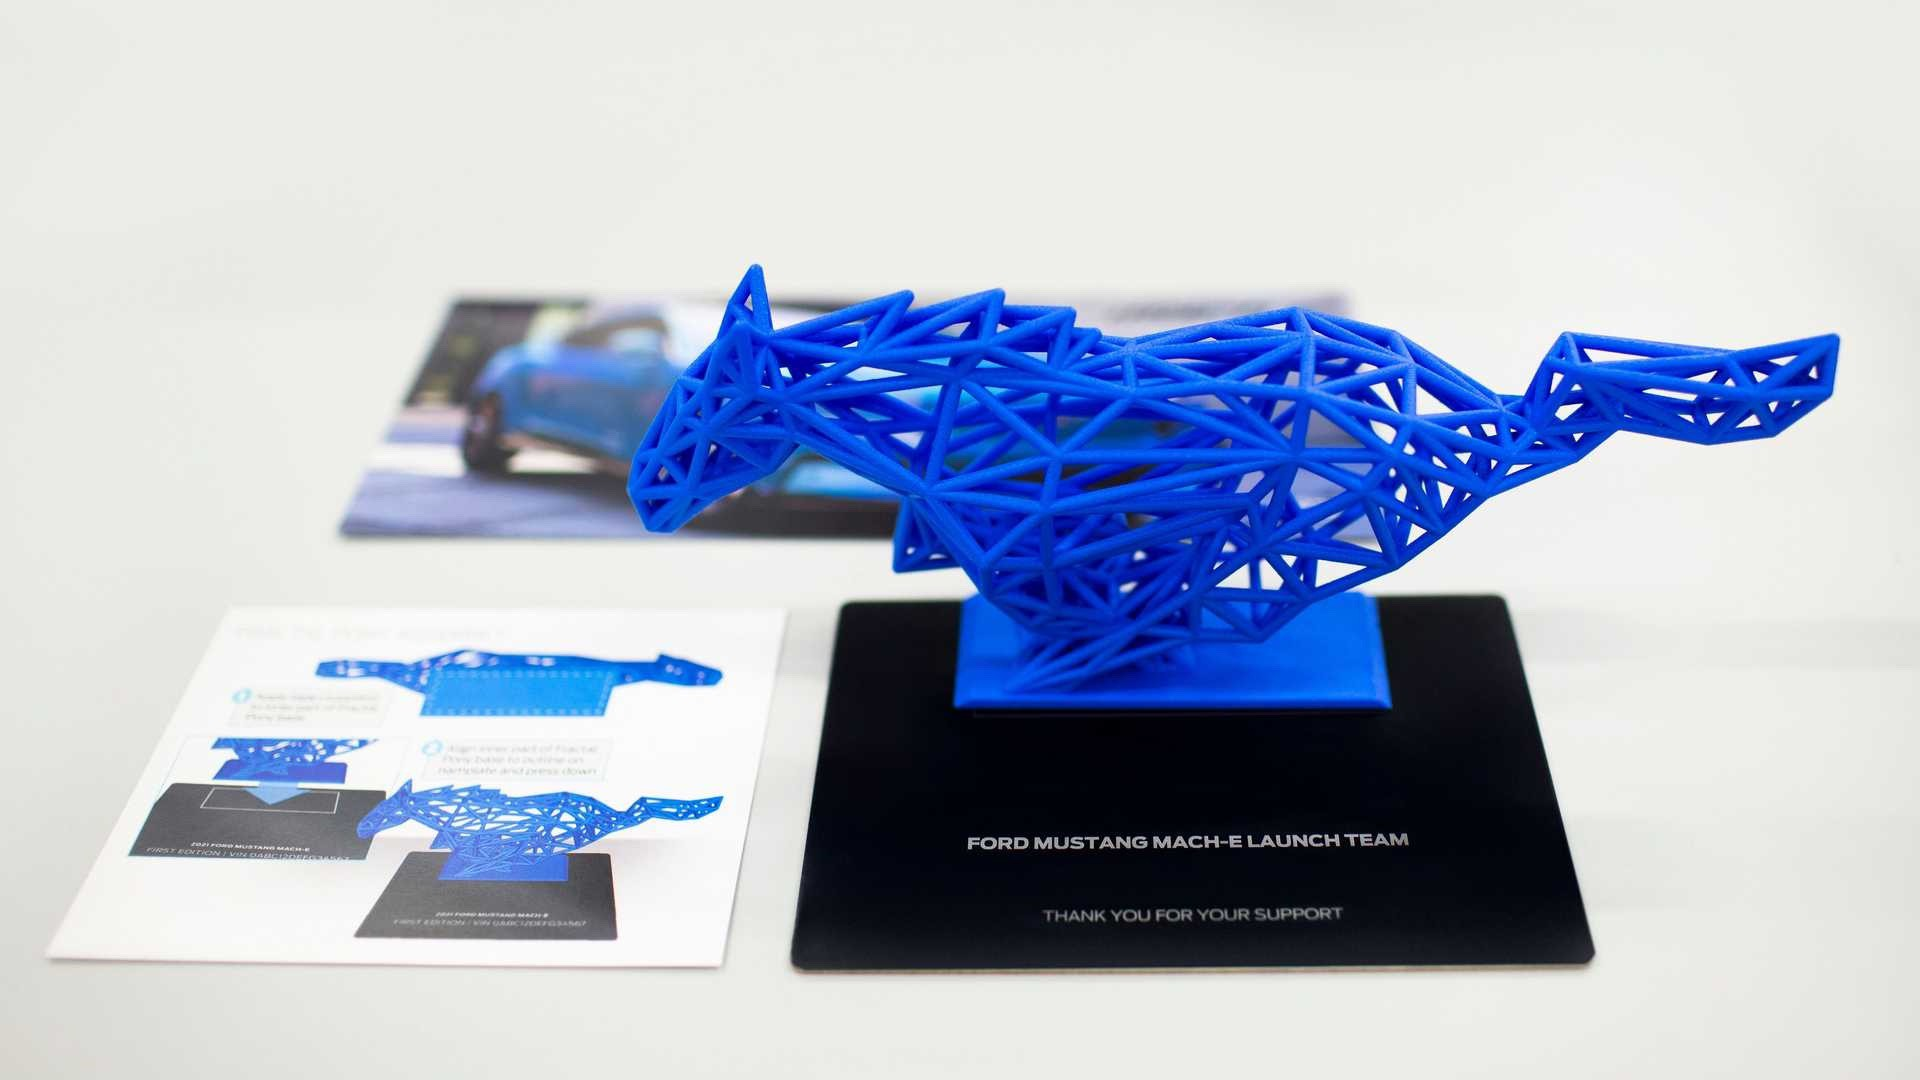 Ford_Mustang_Mach-E_3D-Printed_Sculpture-0002